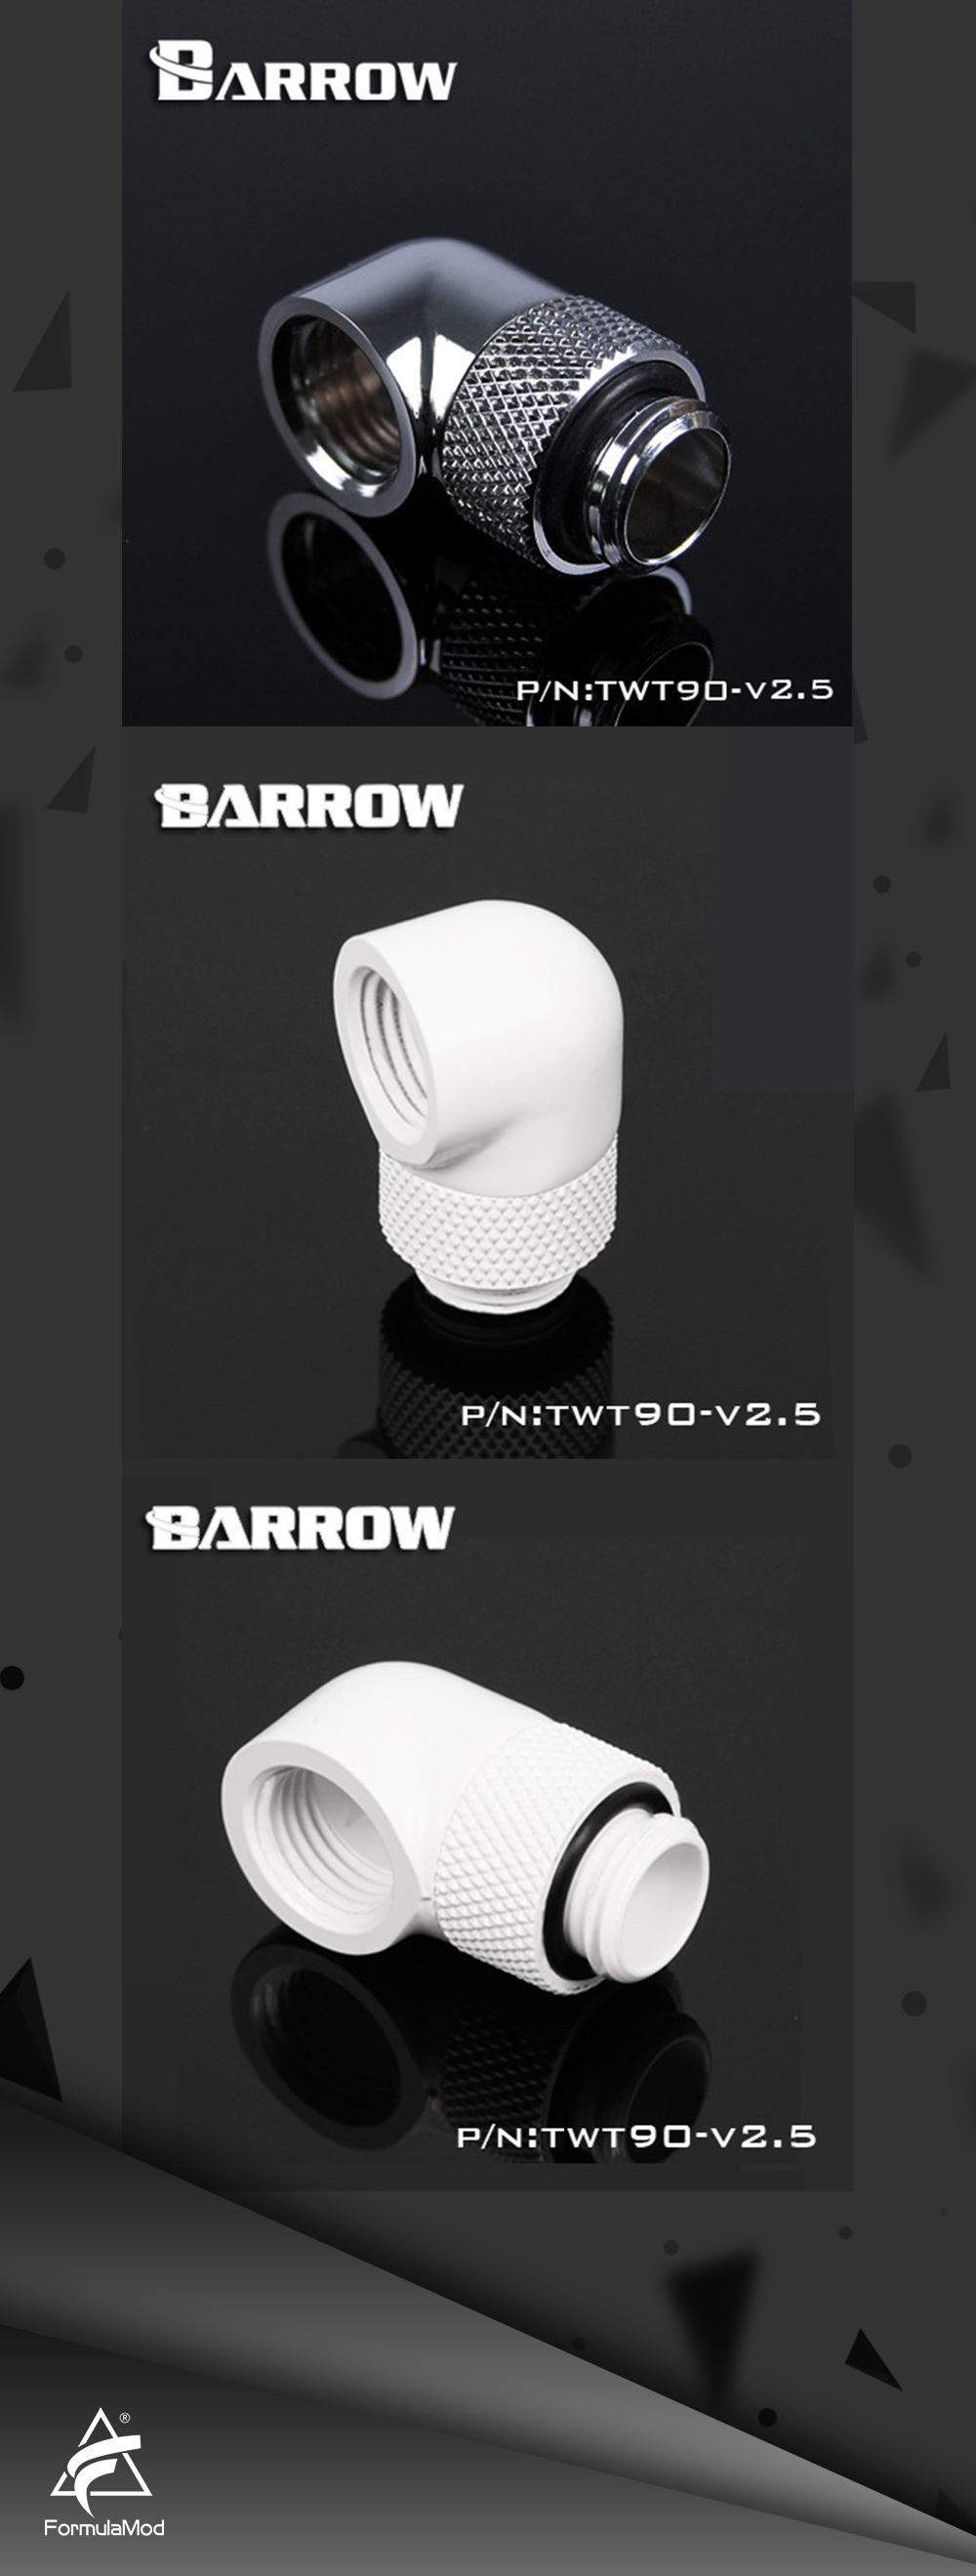 Barrow TWT90-v2.5, G1/4'' Thread 90 Degree Rotary Fittings, Seasonal Hot Sales,One Of The Most Practical Water Coolling Fittings